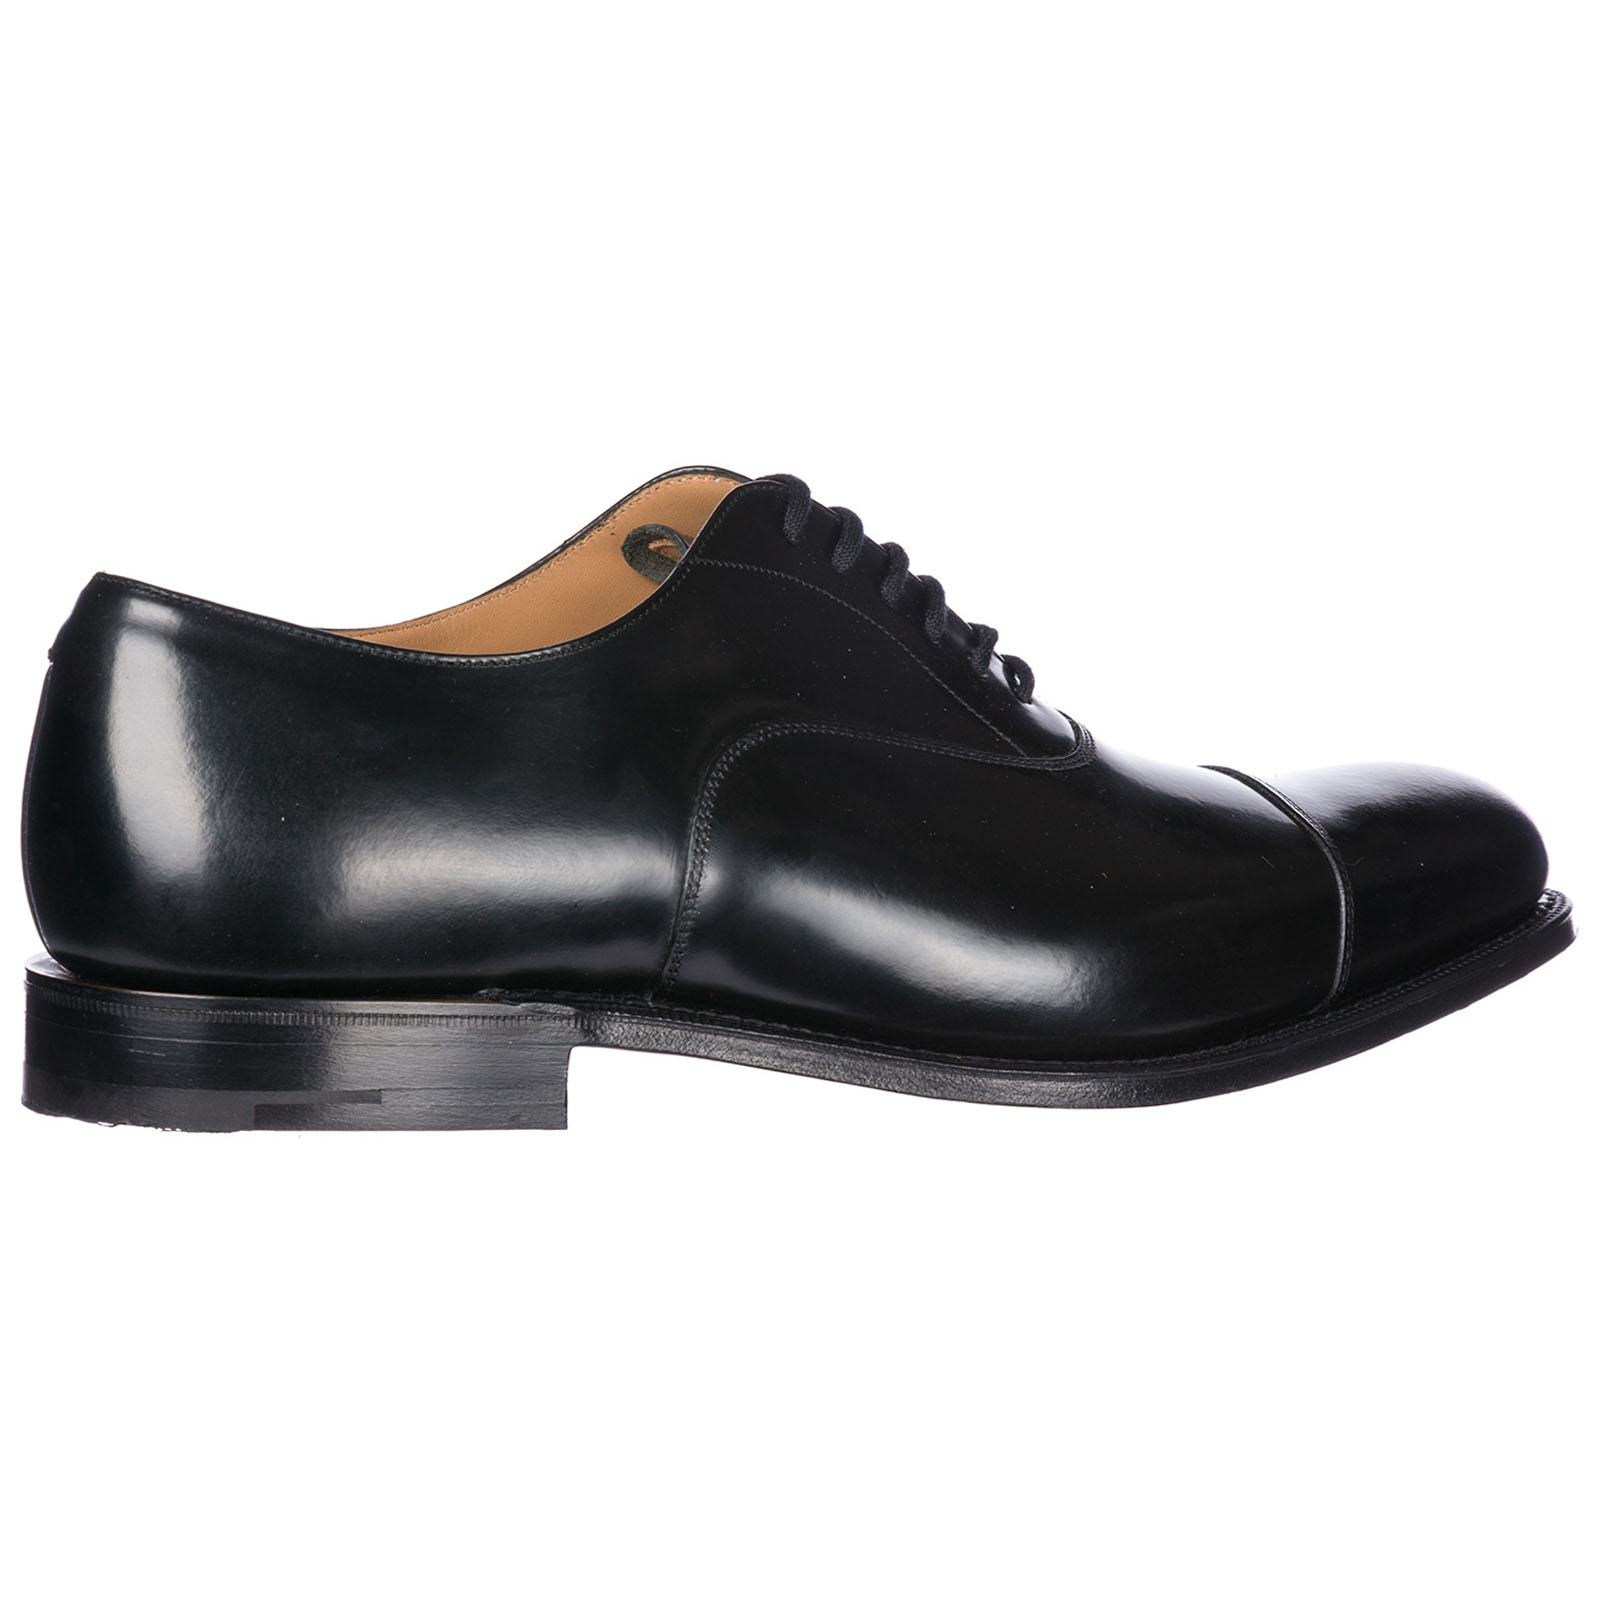 Men's classic leather lace up laced formal shoes dubai oxford